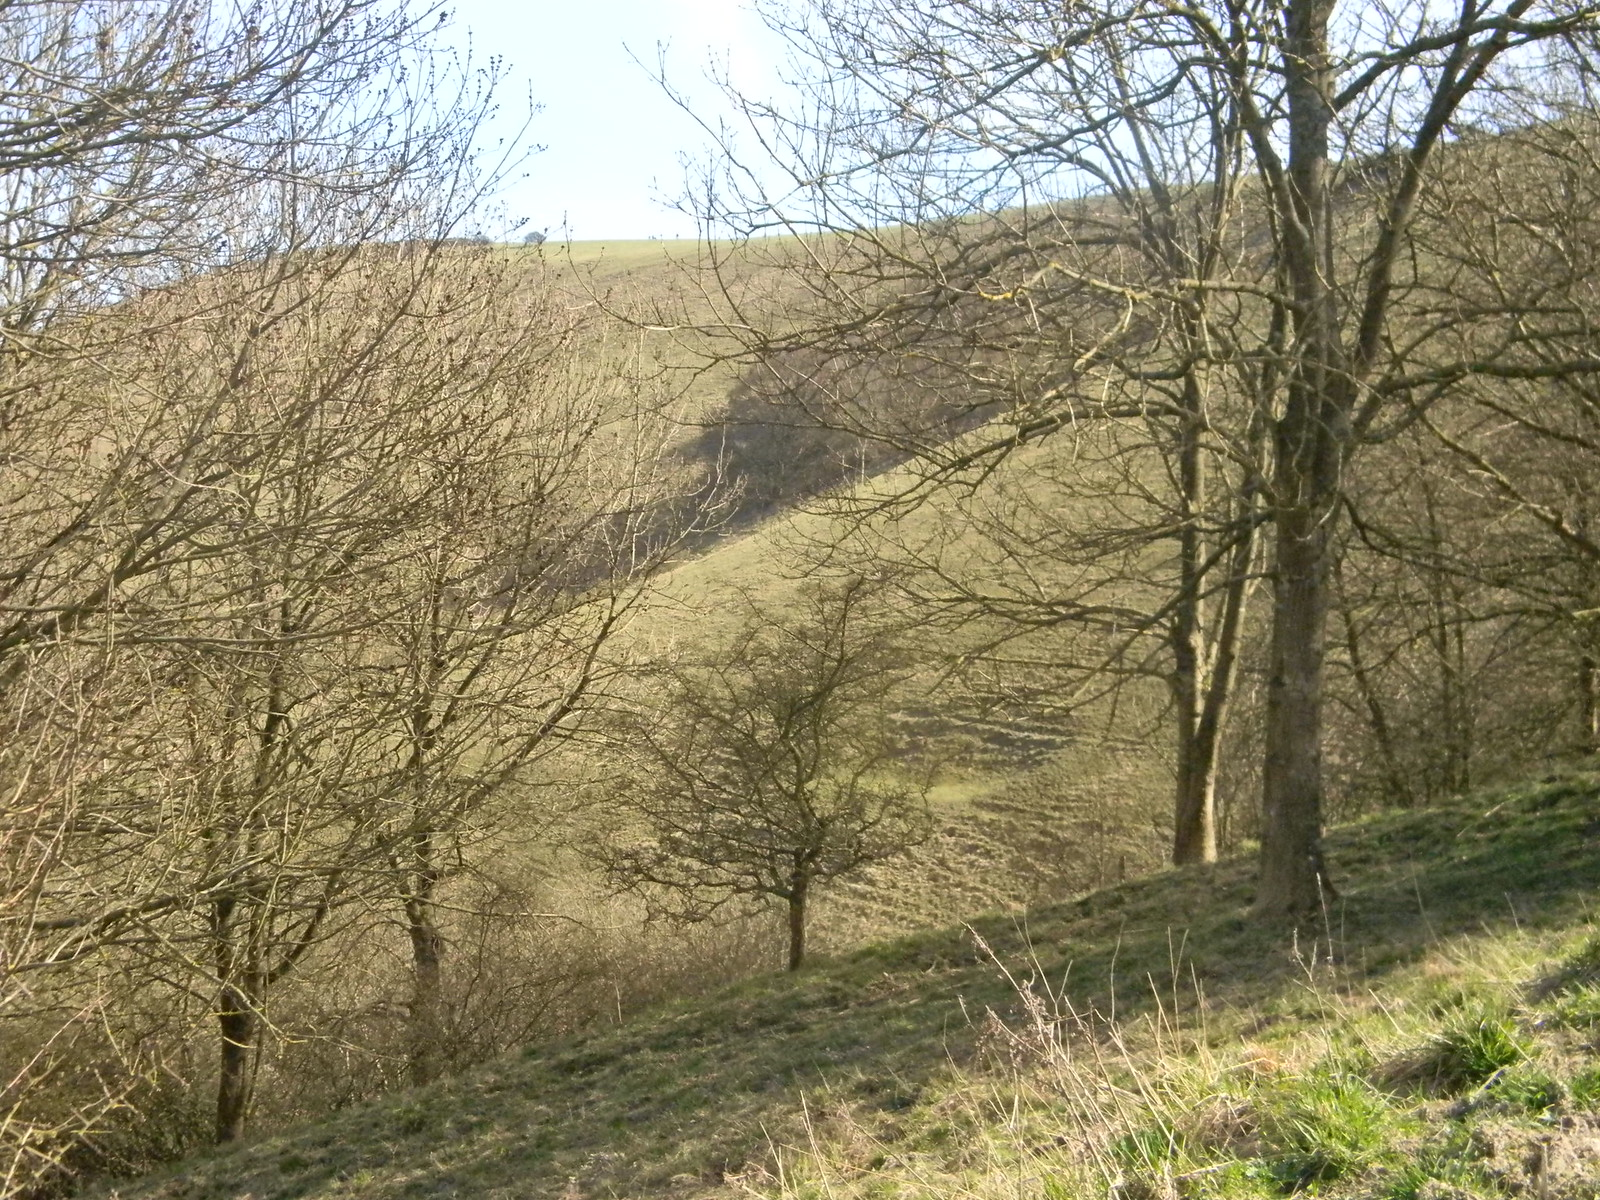 The downs through the trees, Lewes Circular via West Firle